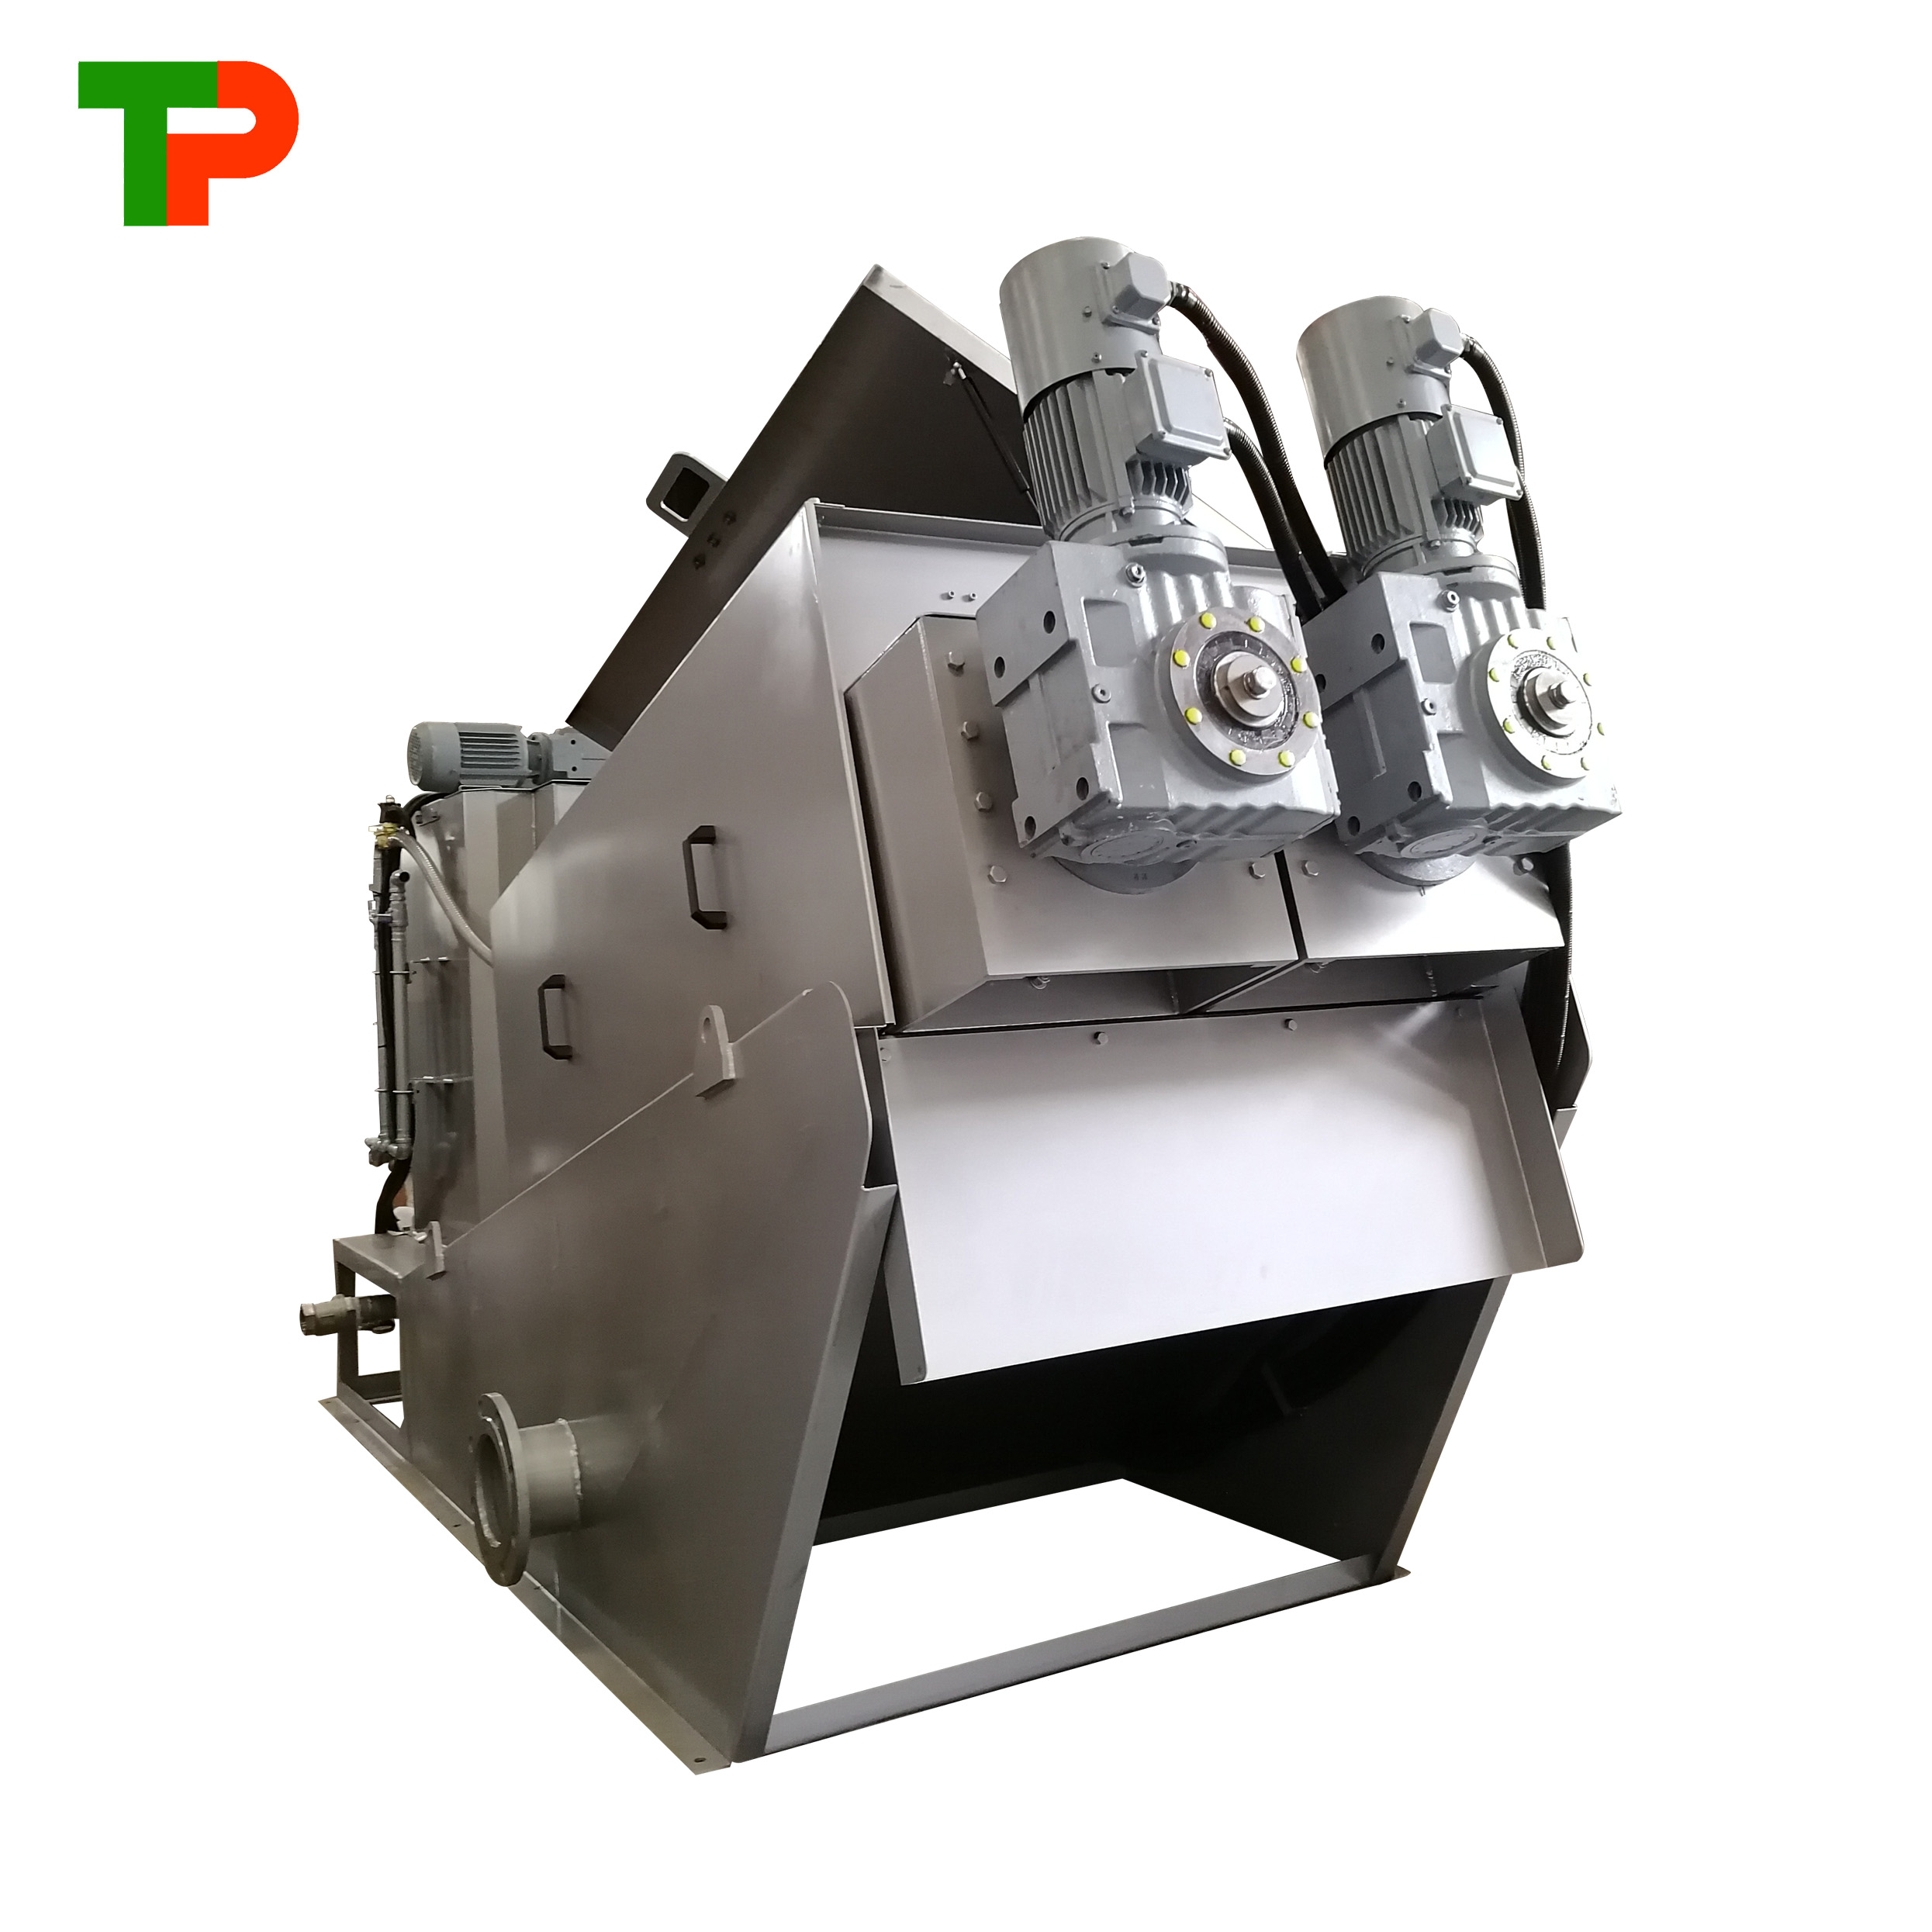 Multi disk screw press sludge dewatering machine for municipal and industrial wastewater treatment